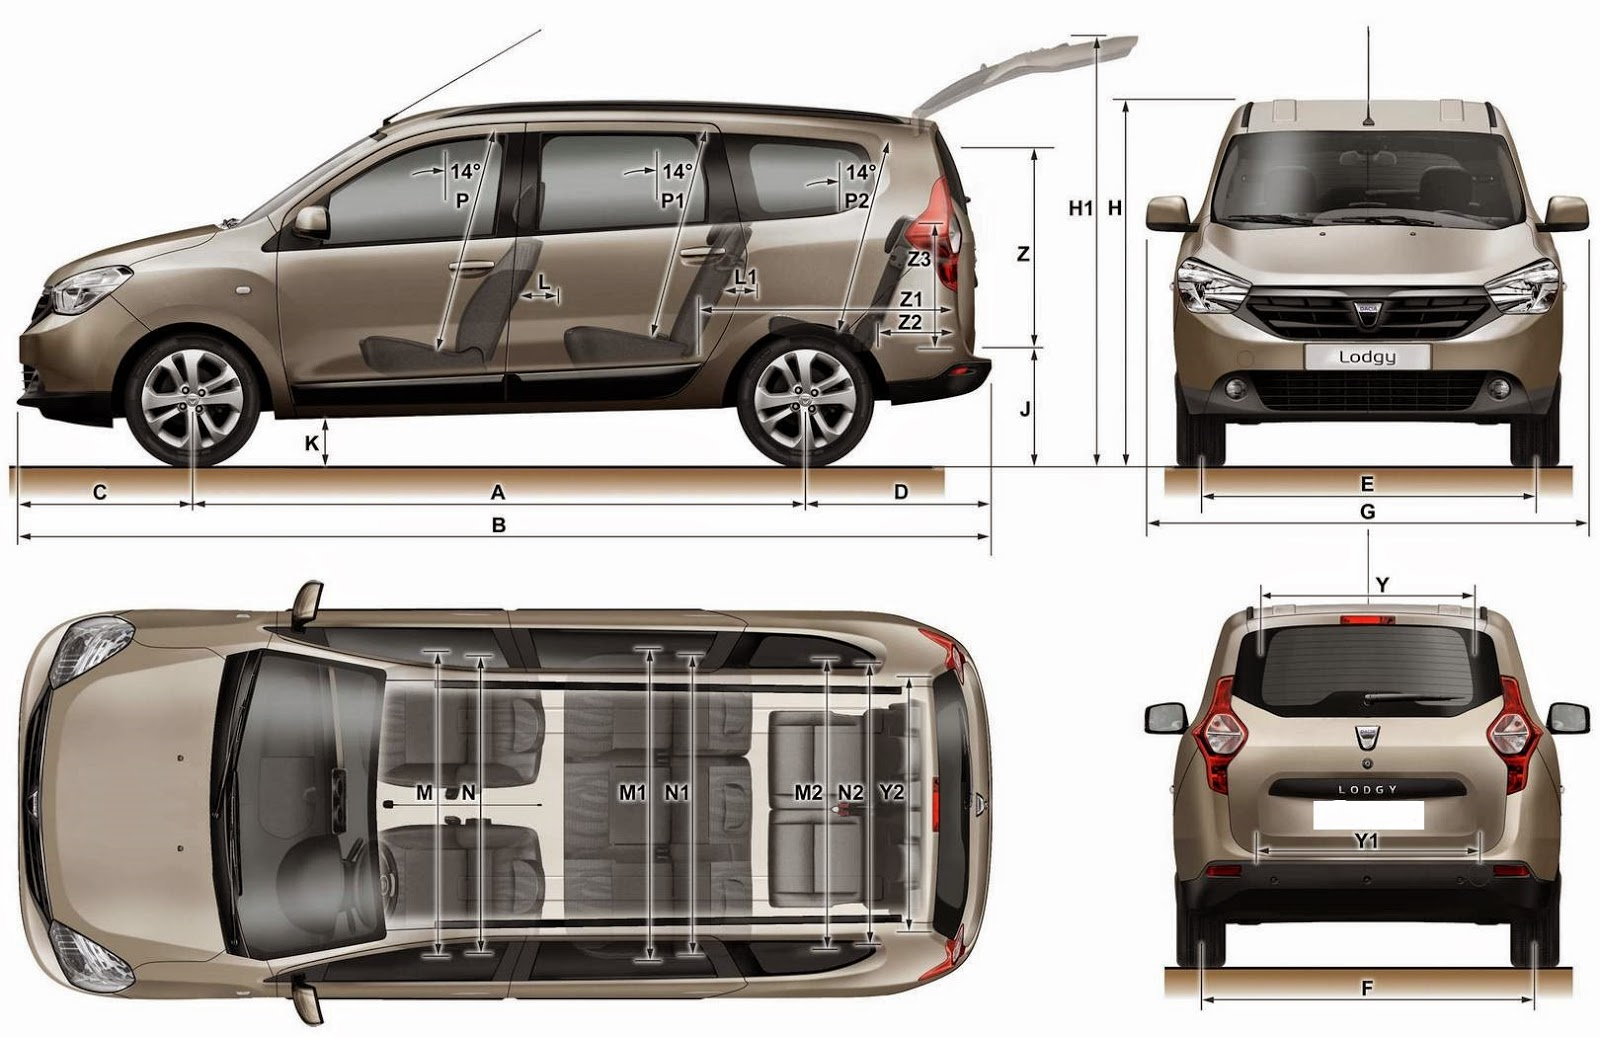 technogoyal renault launches 39 lodgy 39 to make its presence felt in mpv segment